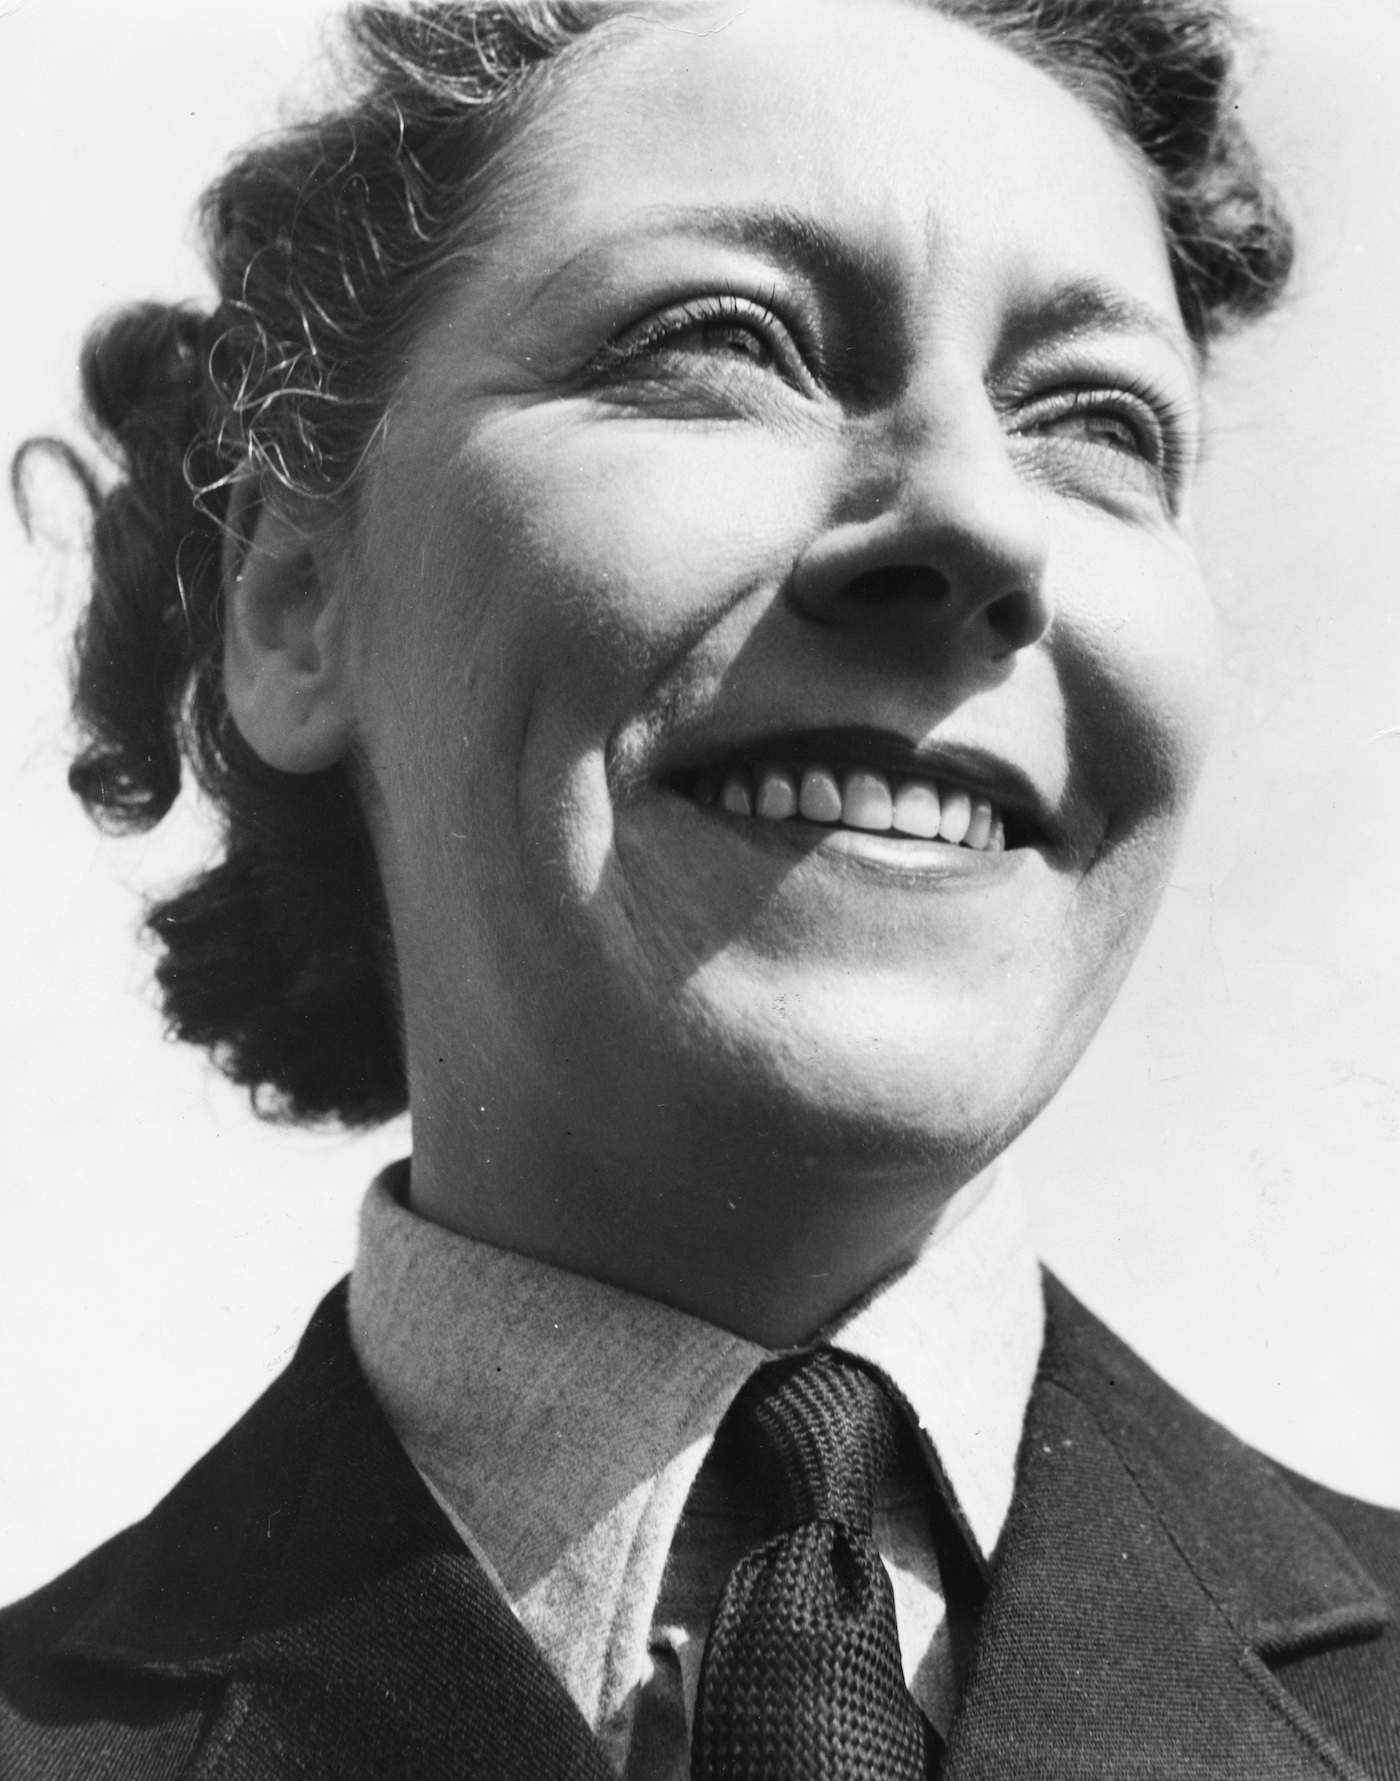 Portrait of aviator Amy Johnson, wearing a tie and uniform, circa 1930. (Photo by Fox Photos/Hulton Archive/Getty Images)